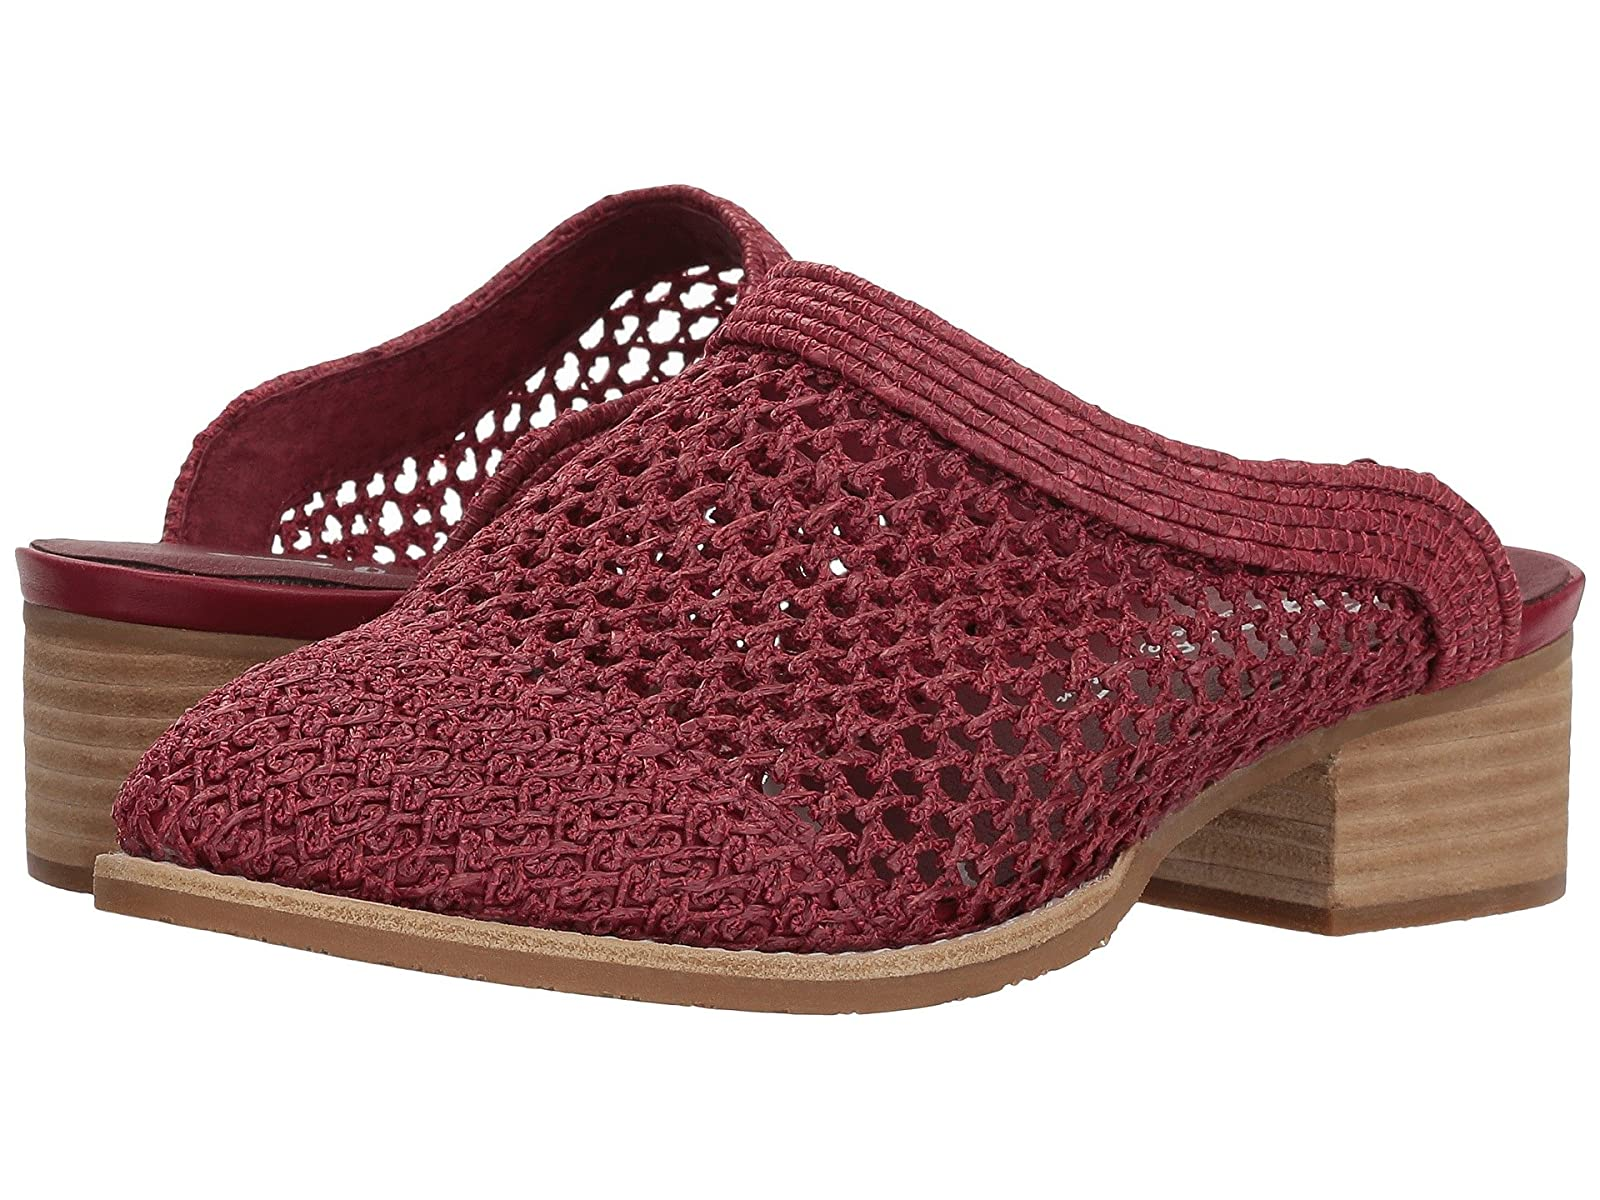 Sbicca VisionCheap and distinctive eye-catching shoes